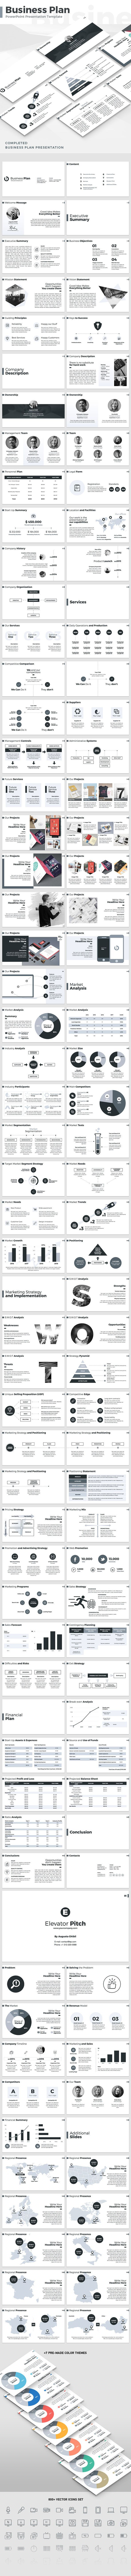 Business Plan - PowerPoint Presentation Template